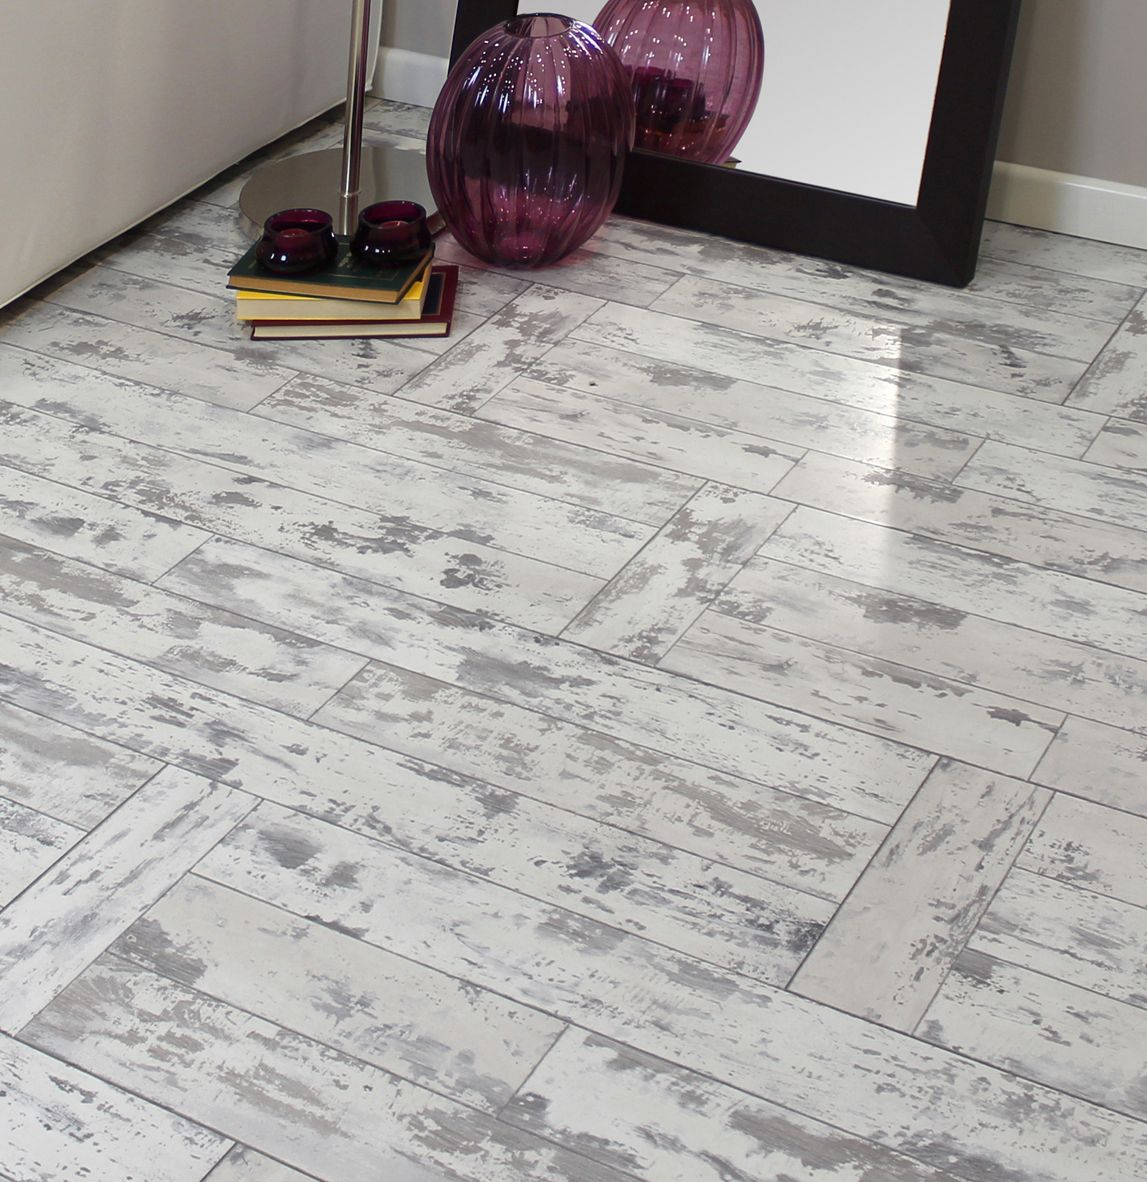 Wood Effect Laminate Flooring For Bathrooms: White Wood Flooring